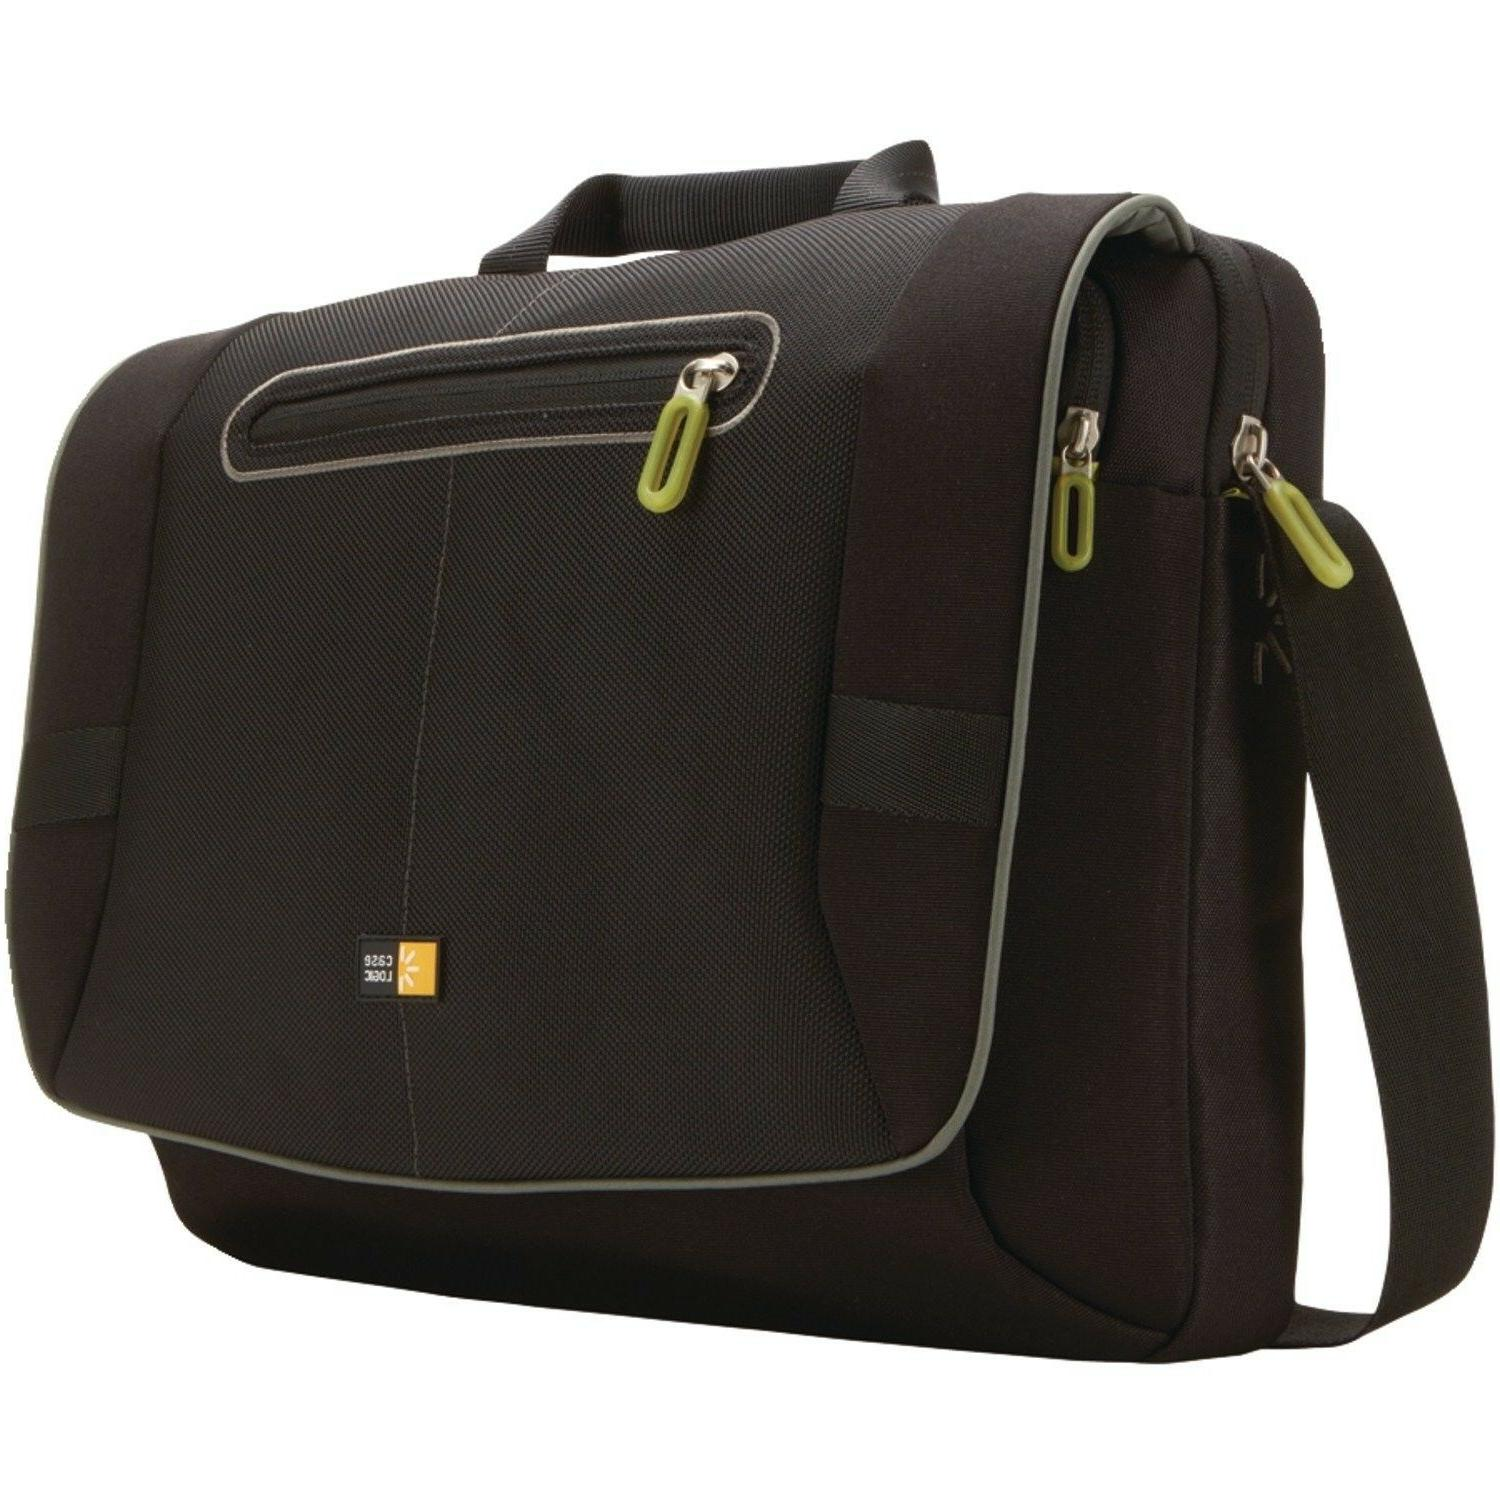 Case Logic PNM-217 17-Inch Laptop Messenger Bag